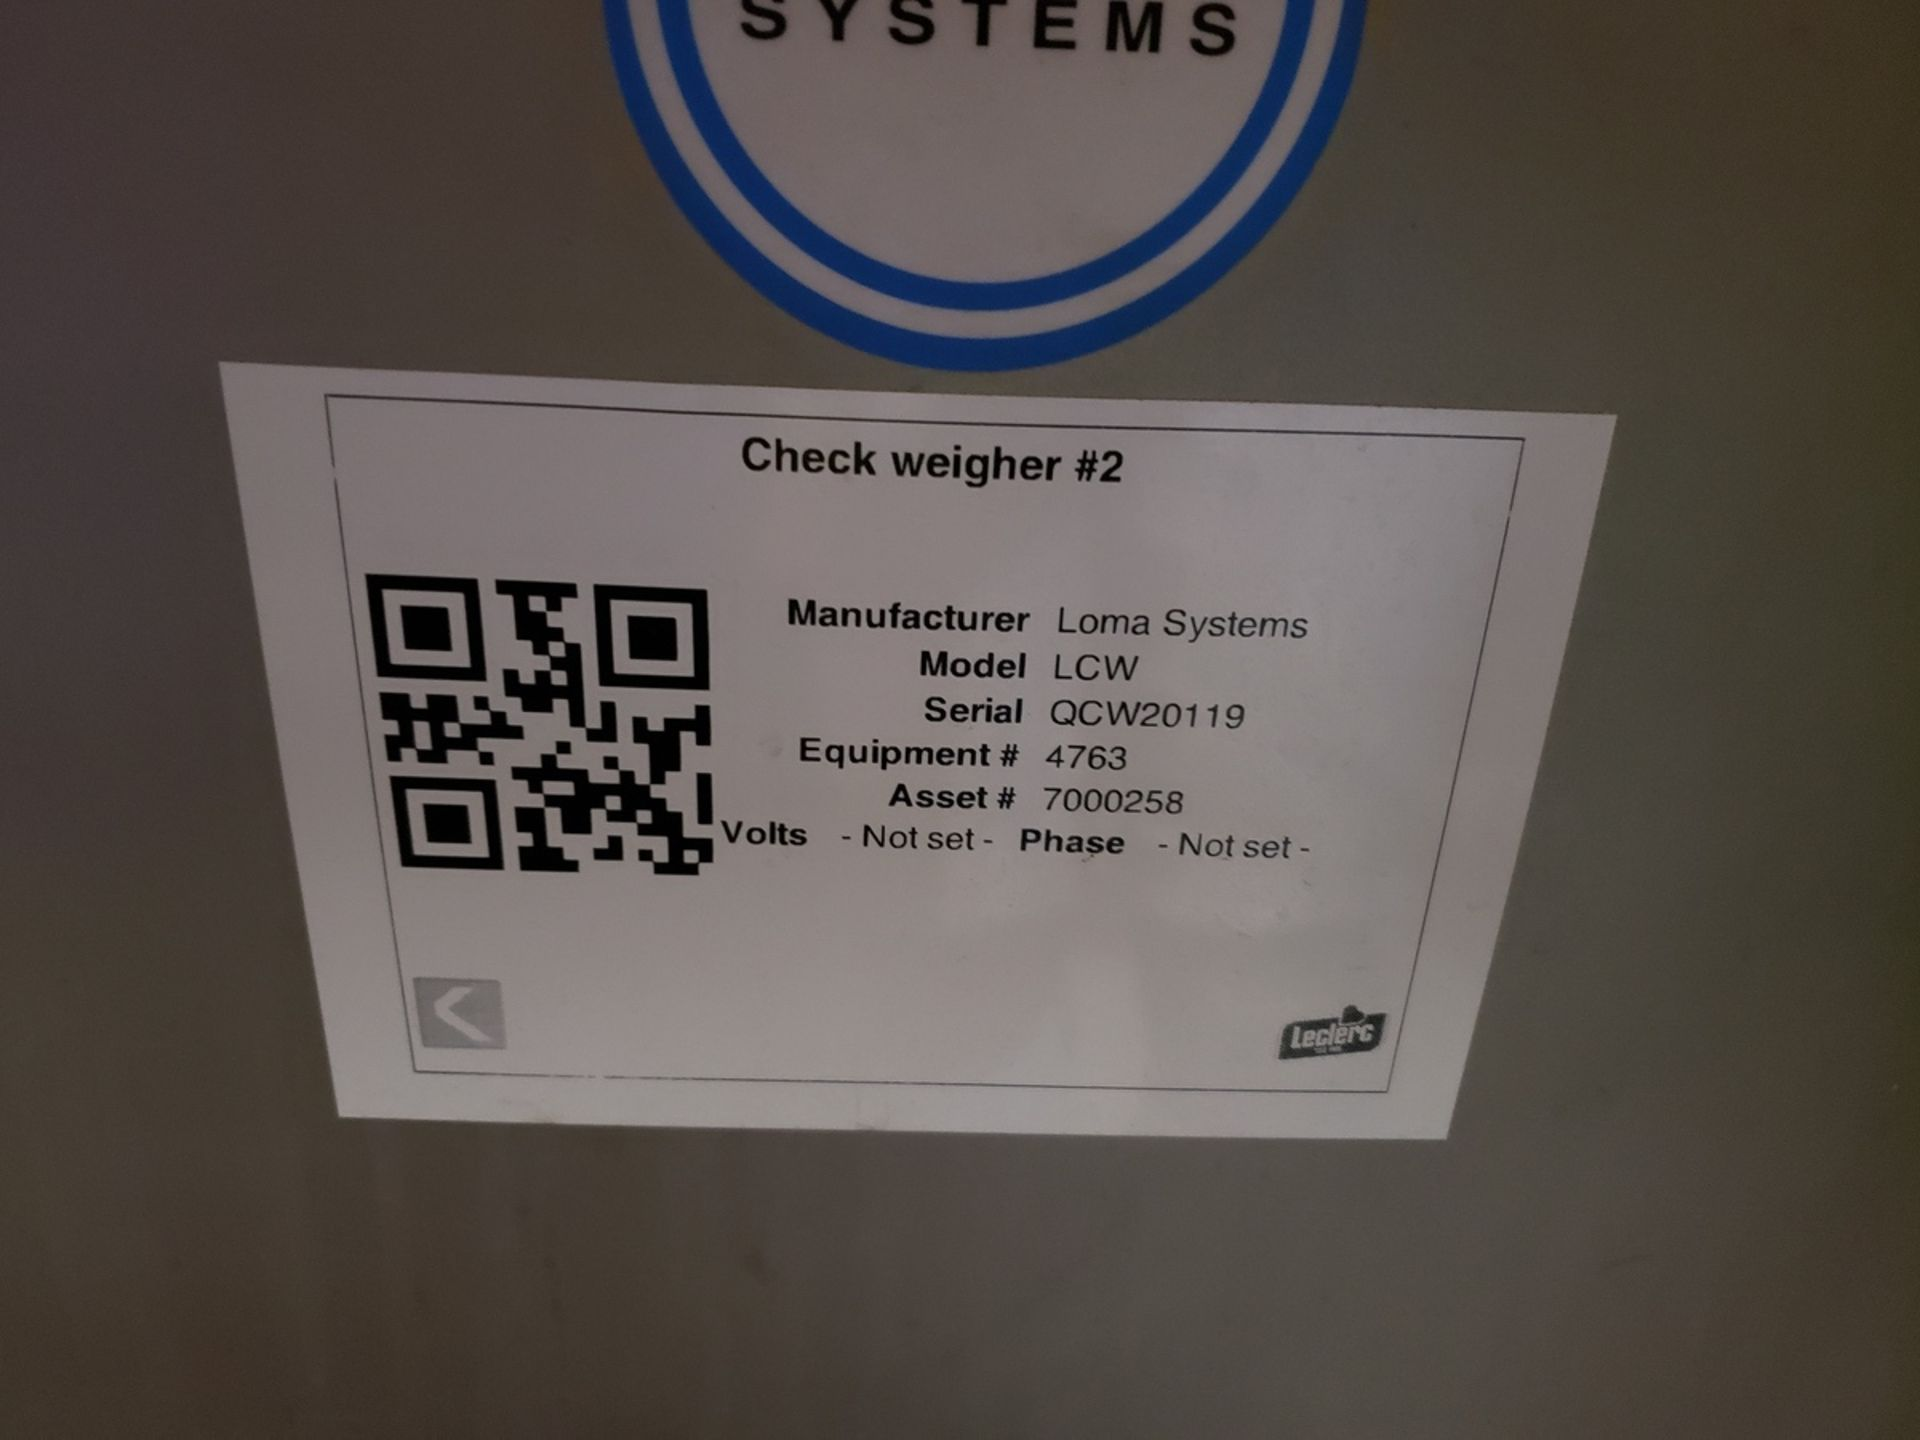 Lot 3 - Loma Systems Check Weigher, M# LCW, S/N QCW20119